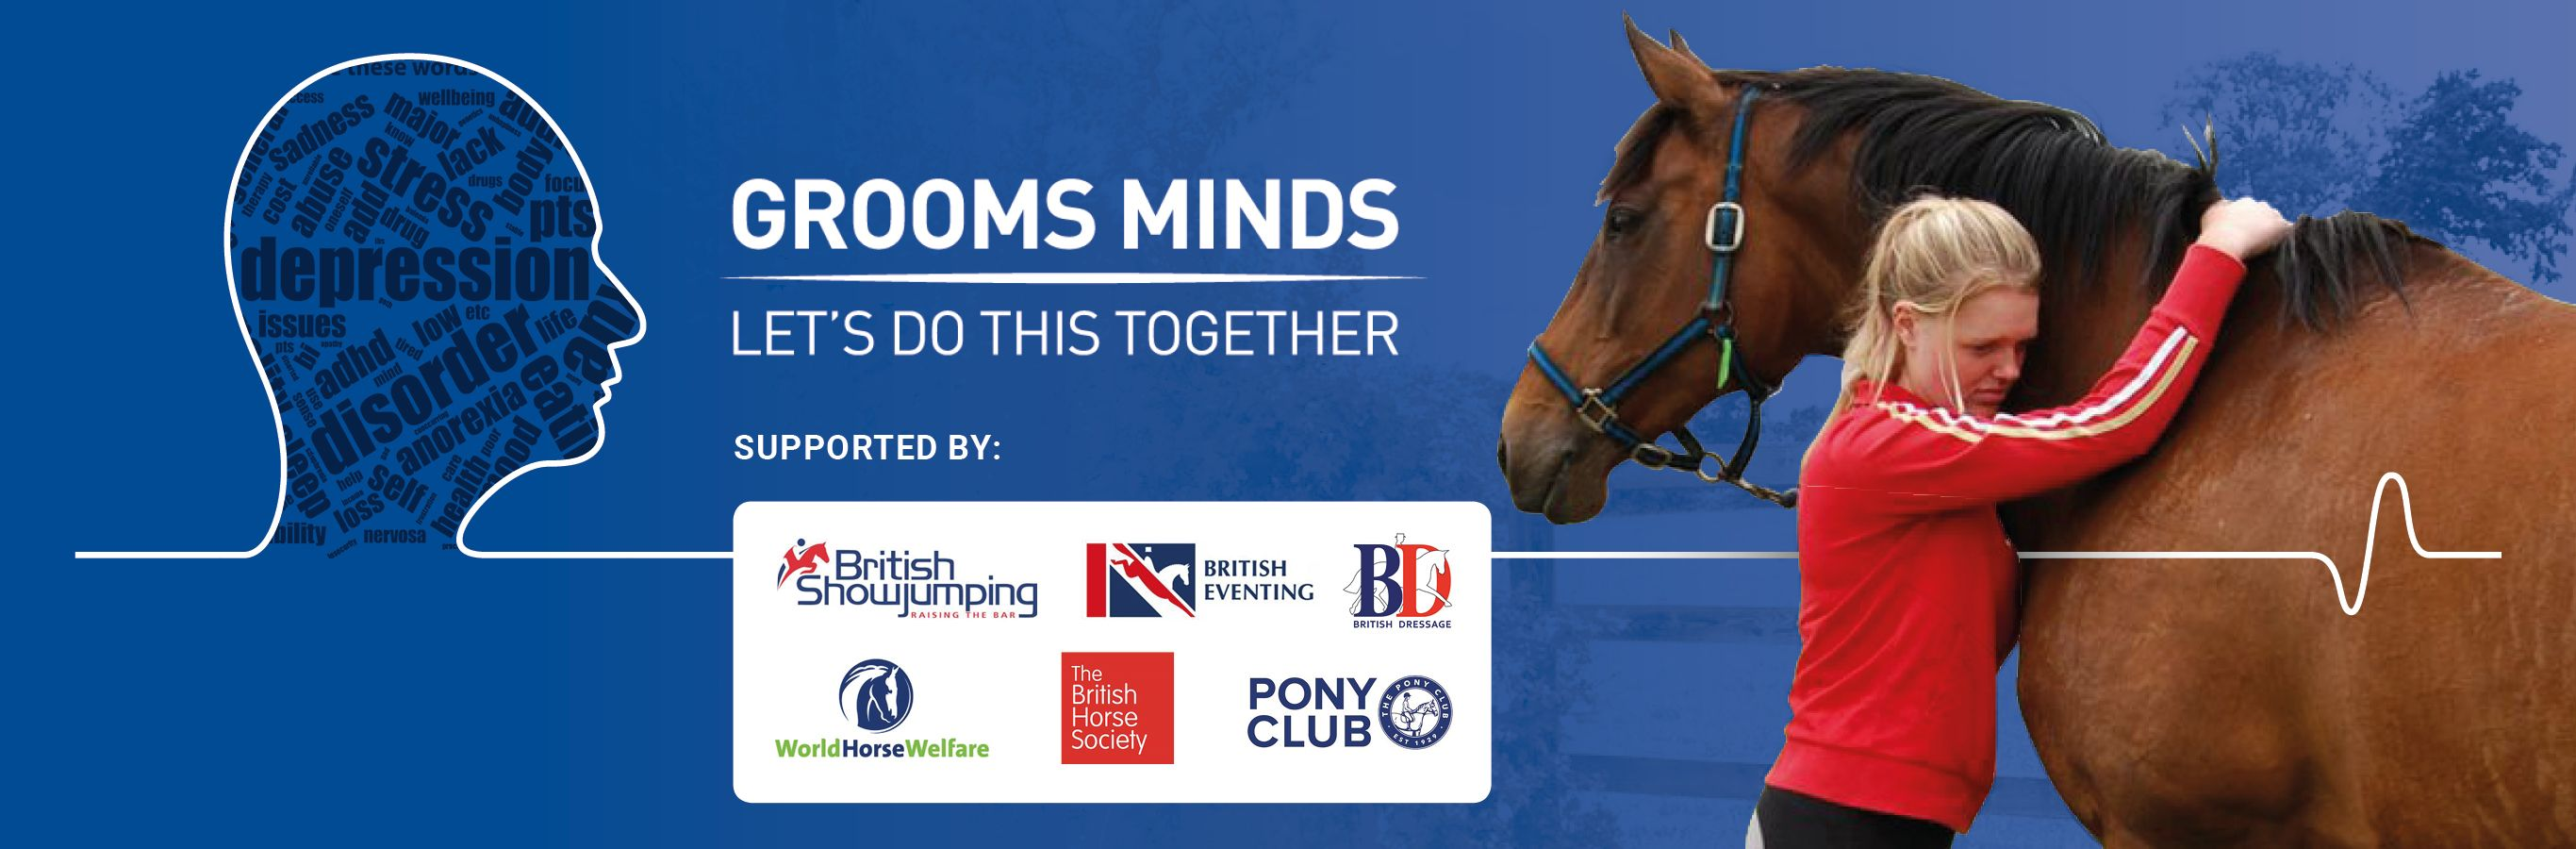 Grooms Minds Mental health support from British Grooms Association